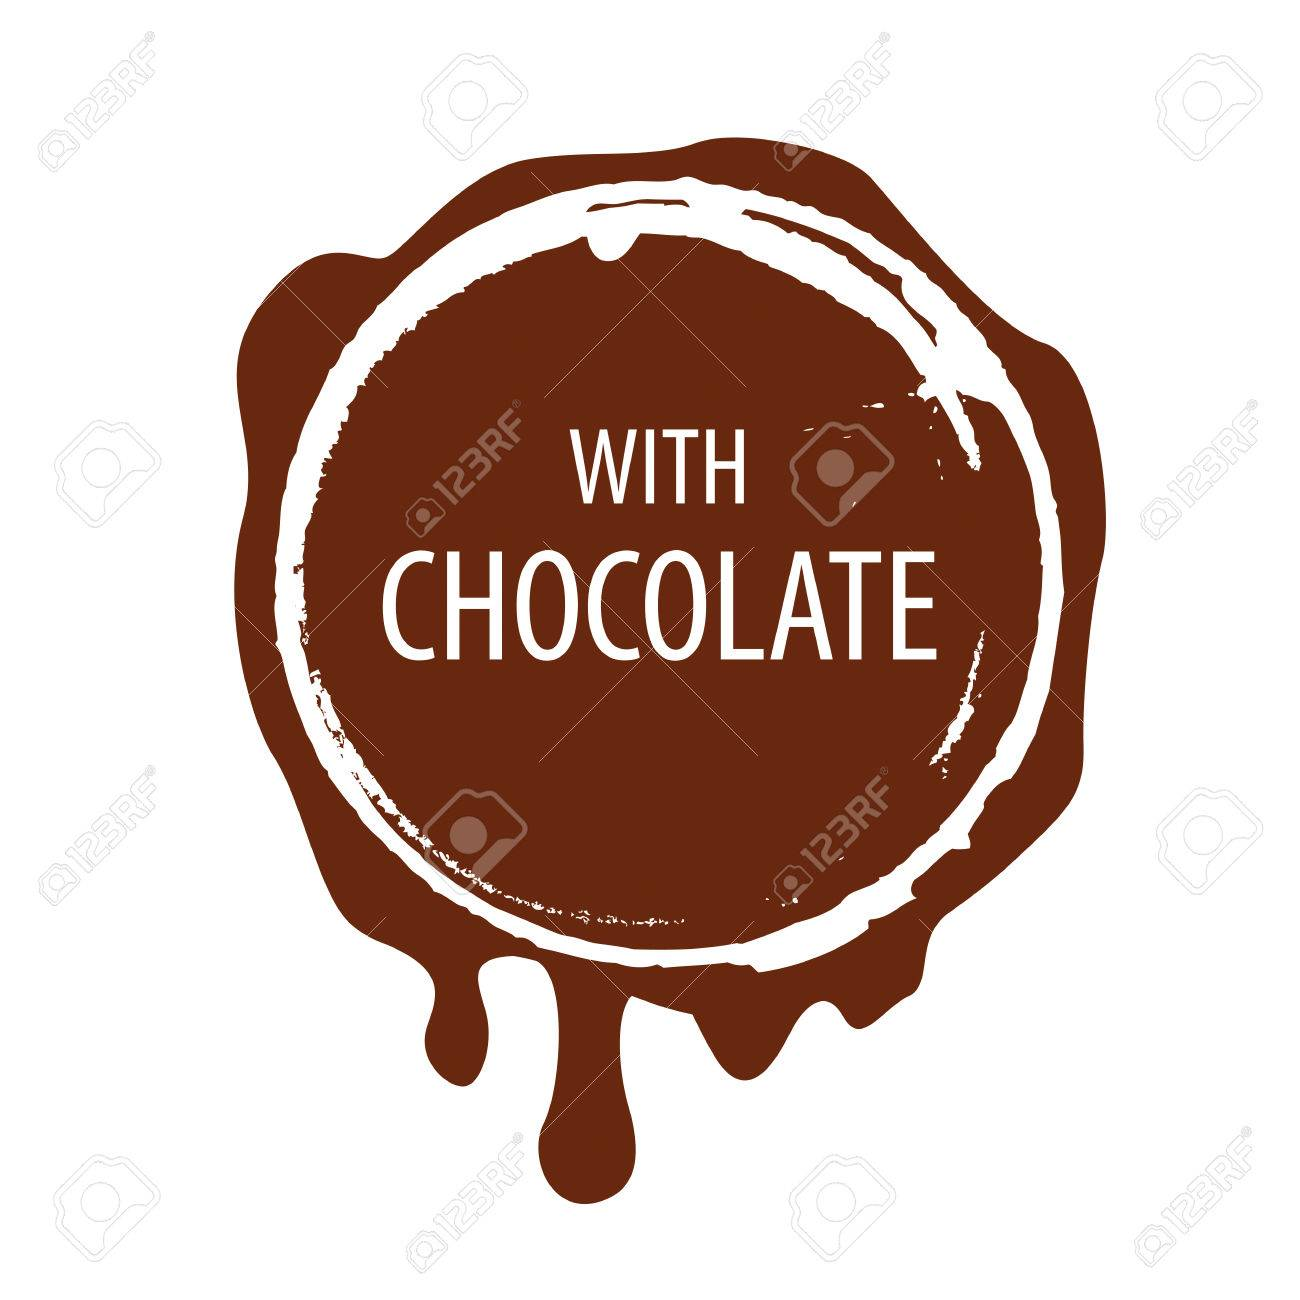 Vector logo chocolate printing for labels royalty free cliparts vector logo chocolate printing for labels stock vector 41764691 sciox Choice Image